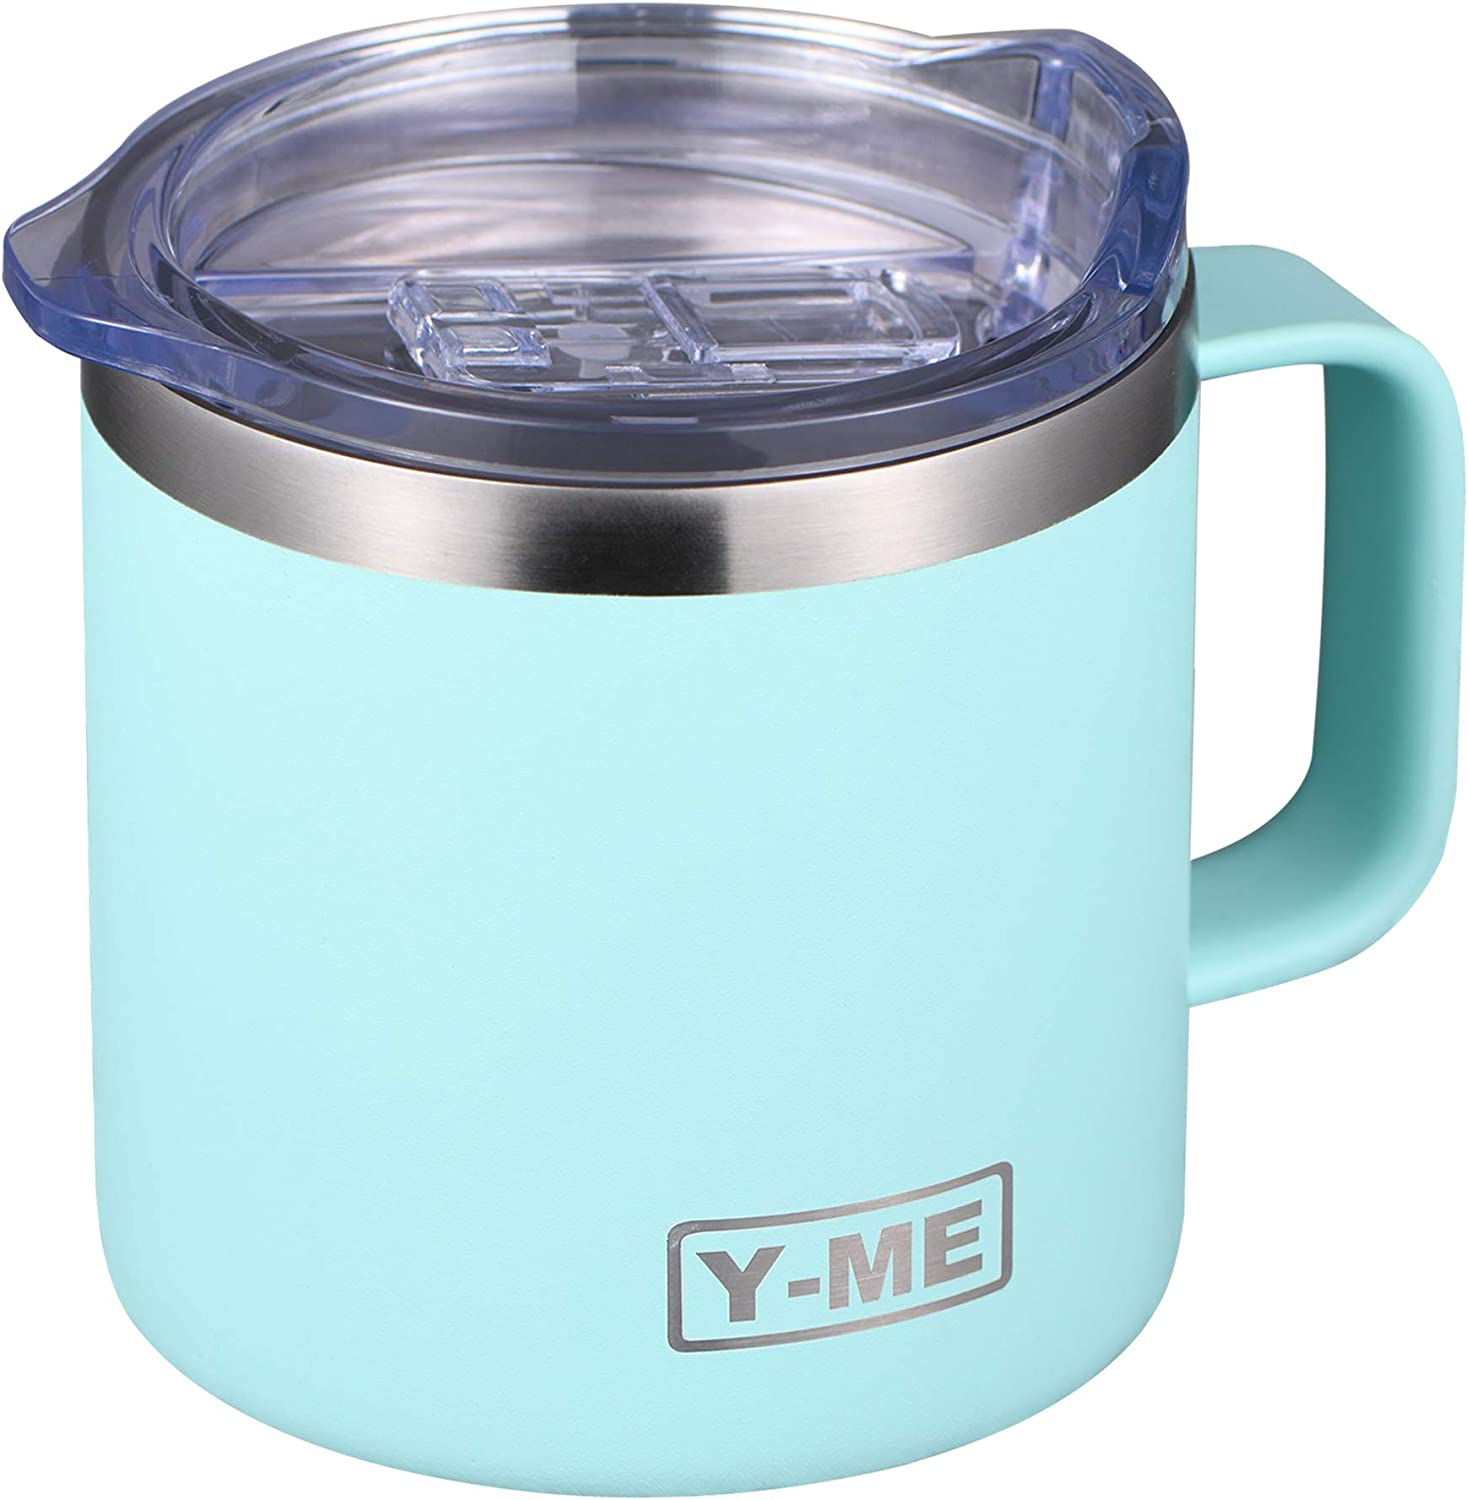 Y-ME Stainless Steel Insulated Coffee Mug Tumbler with Handle,Double Wall Tumbler Cup with Lid in the Office or Camping